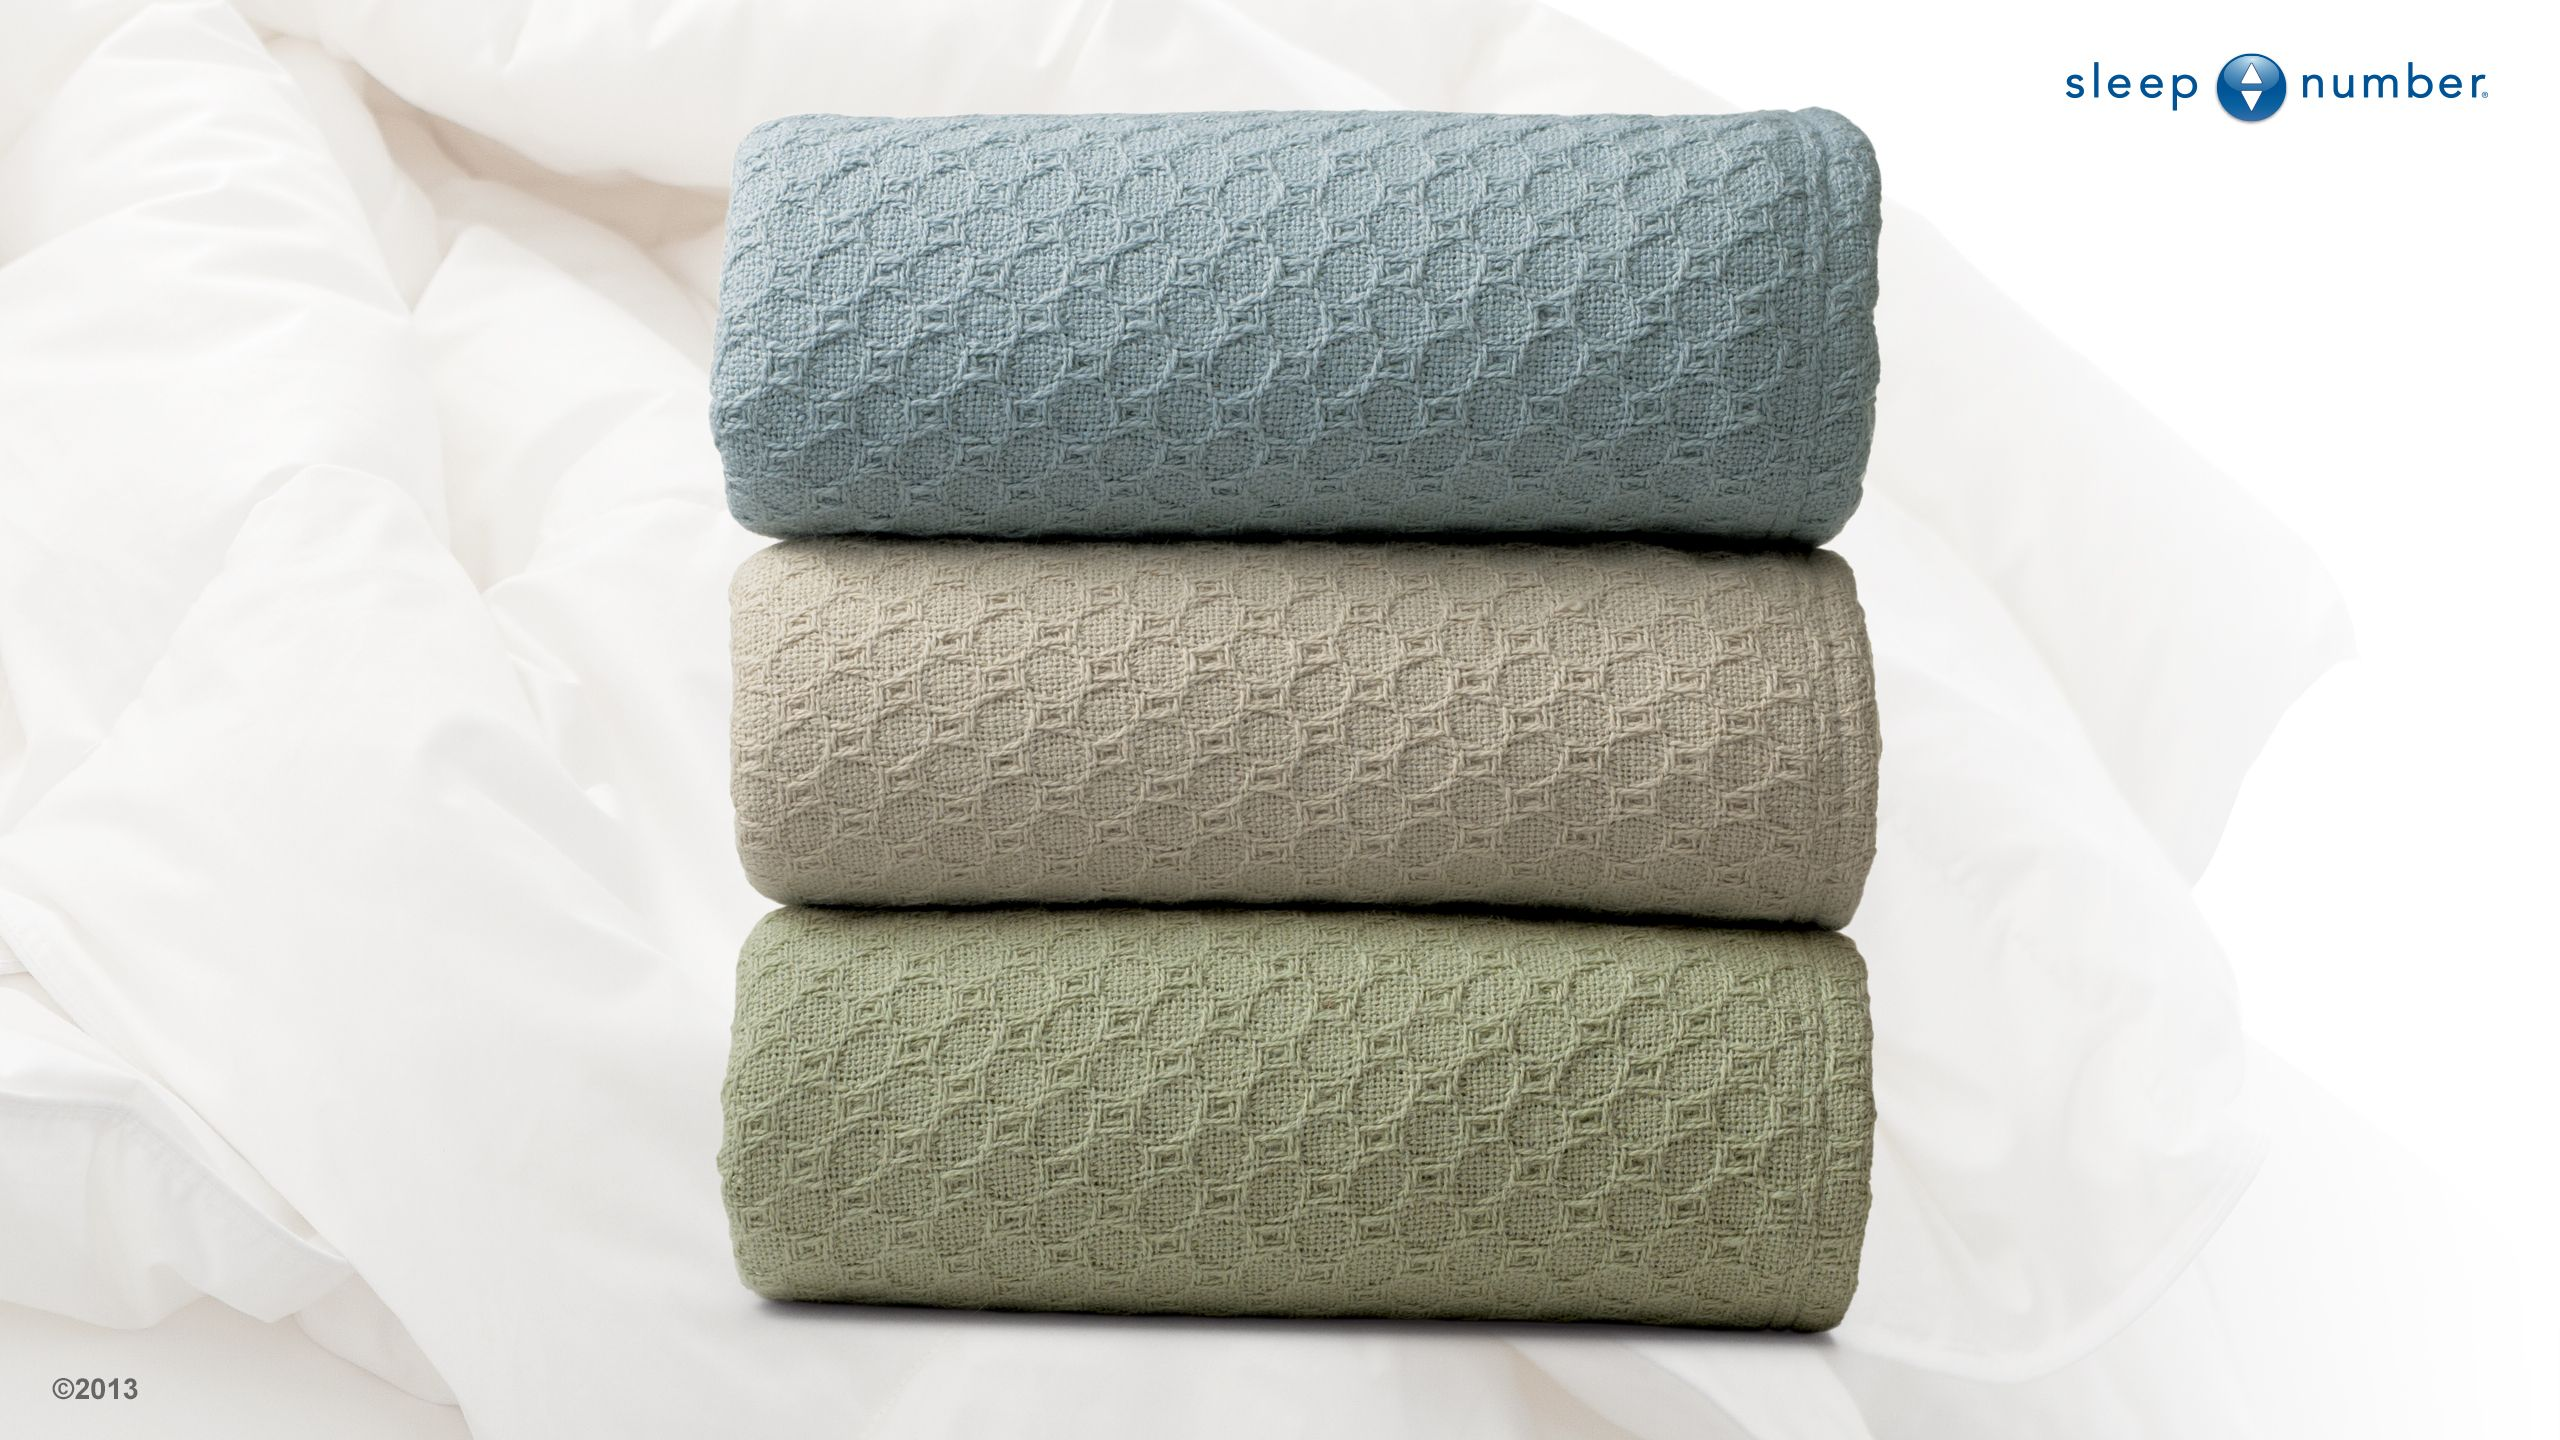 Sleep Hot Or Cold Our Sleepnumber In Balance Blankets Made